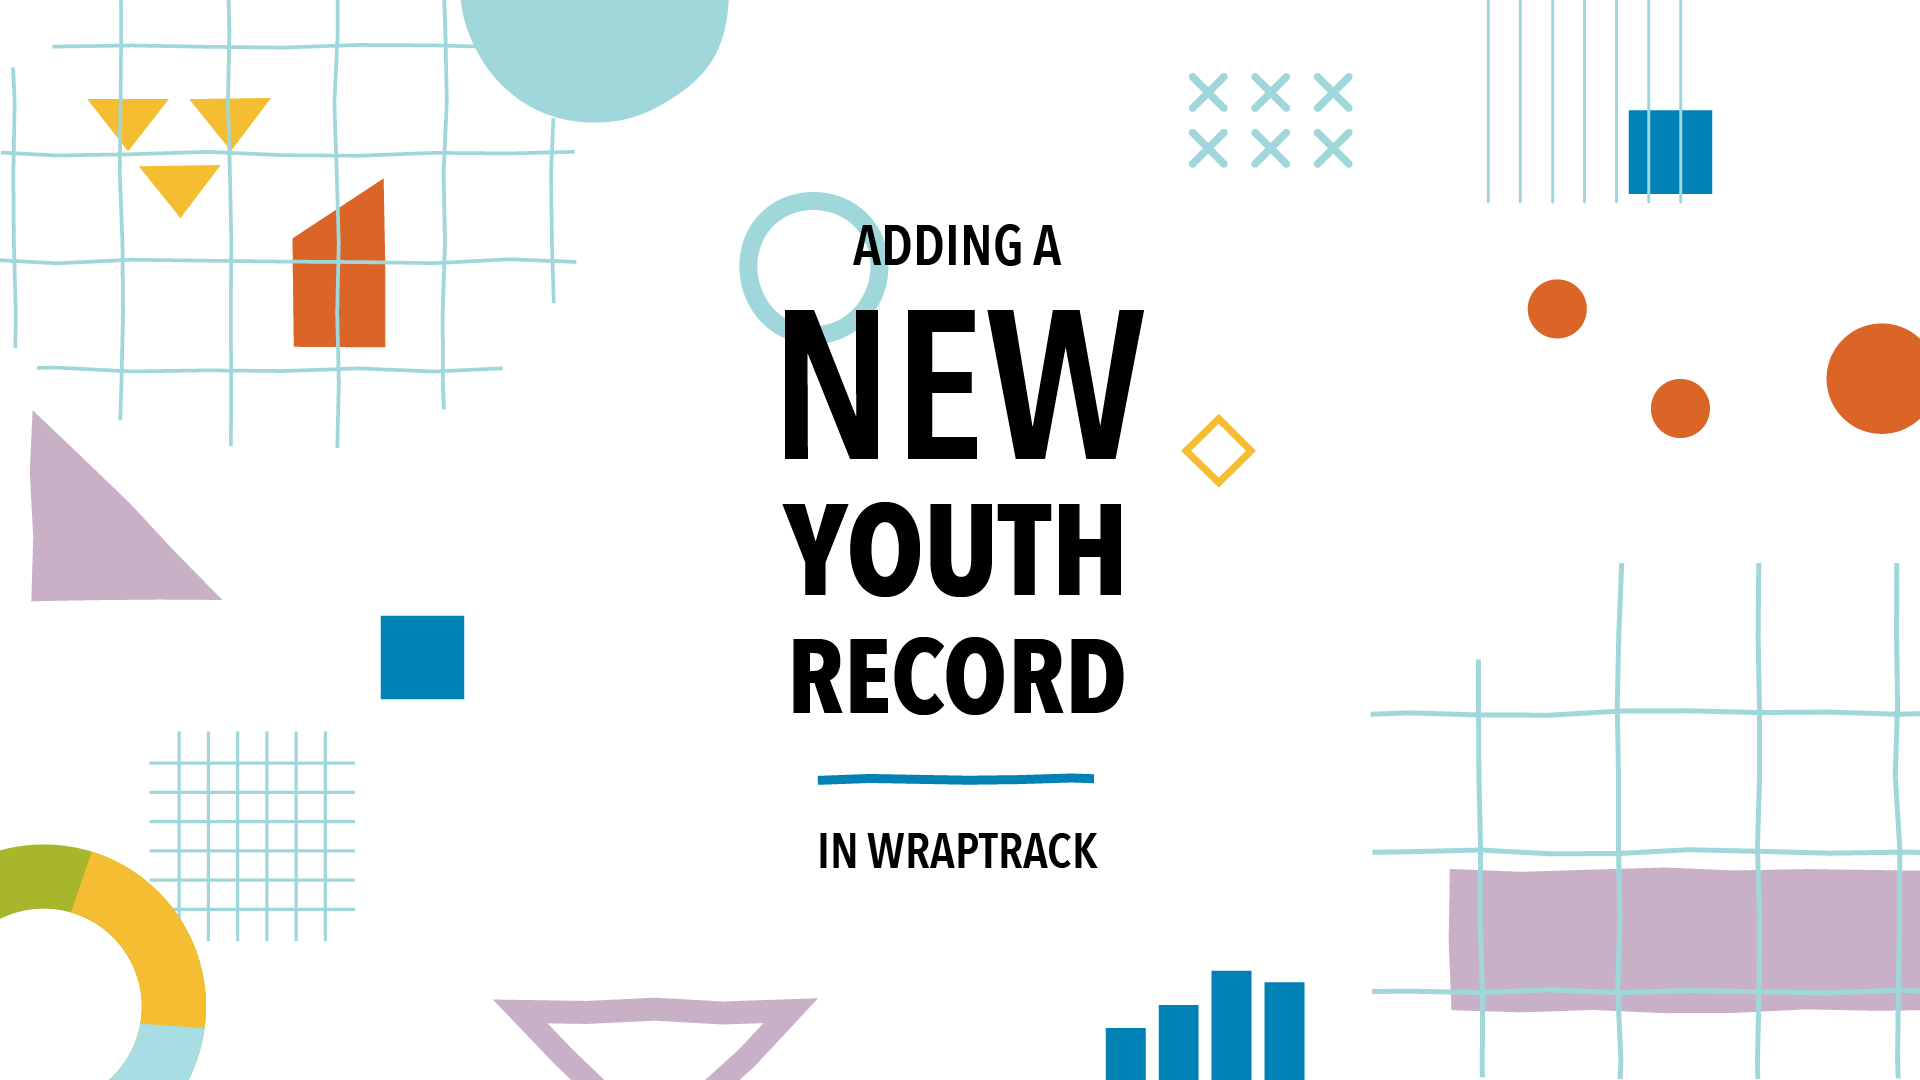 Adding A New Youth Record in WrapTrack